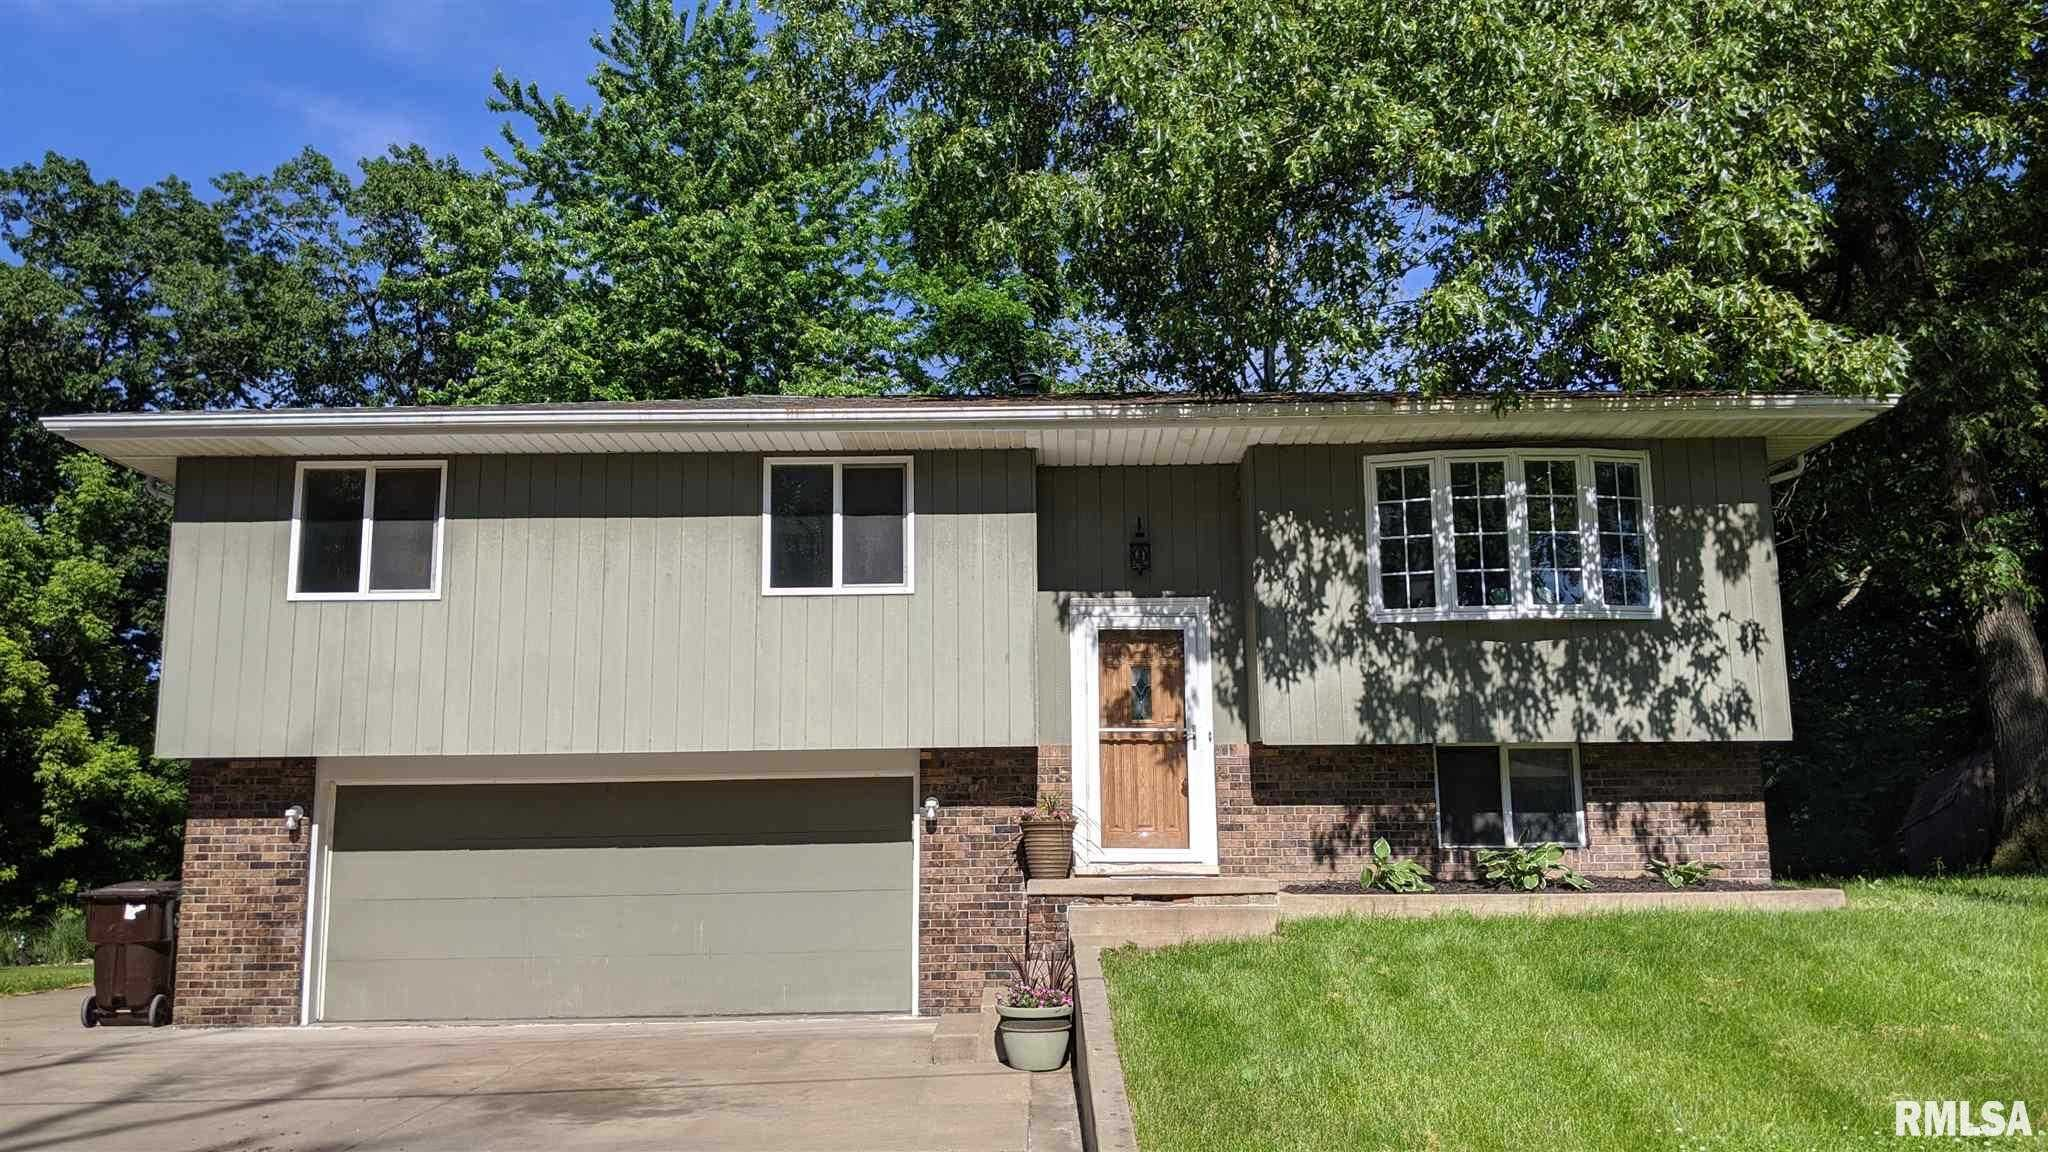 $115,900 - 3Br/2Ba -  for Sale in Rainbow Park, Creve Coeur